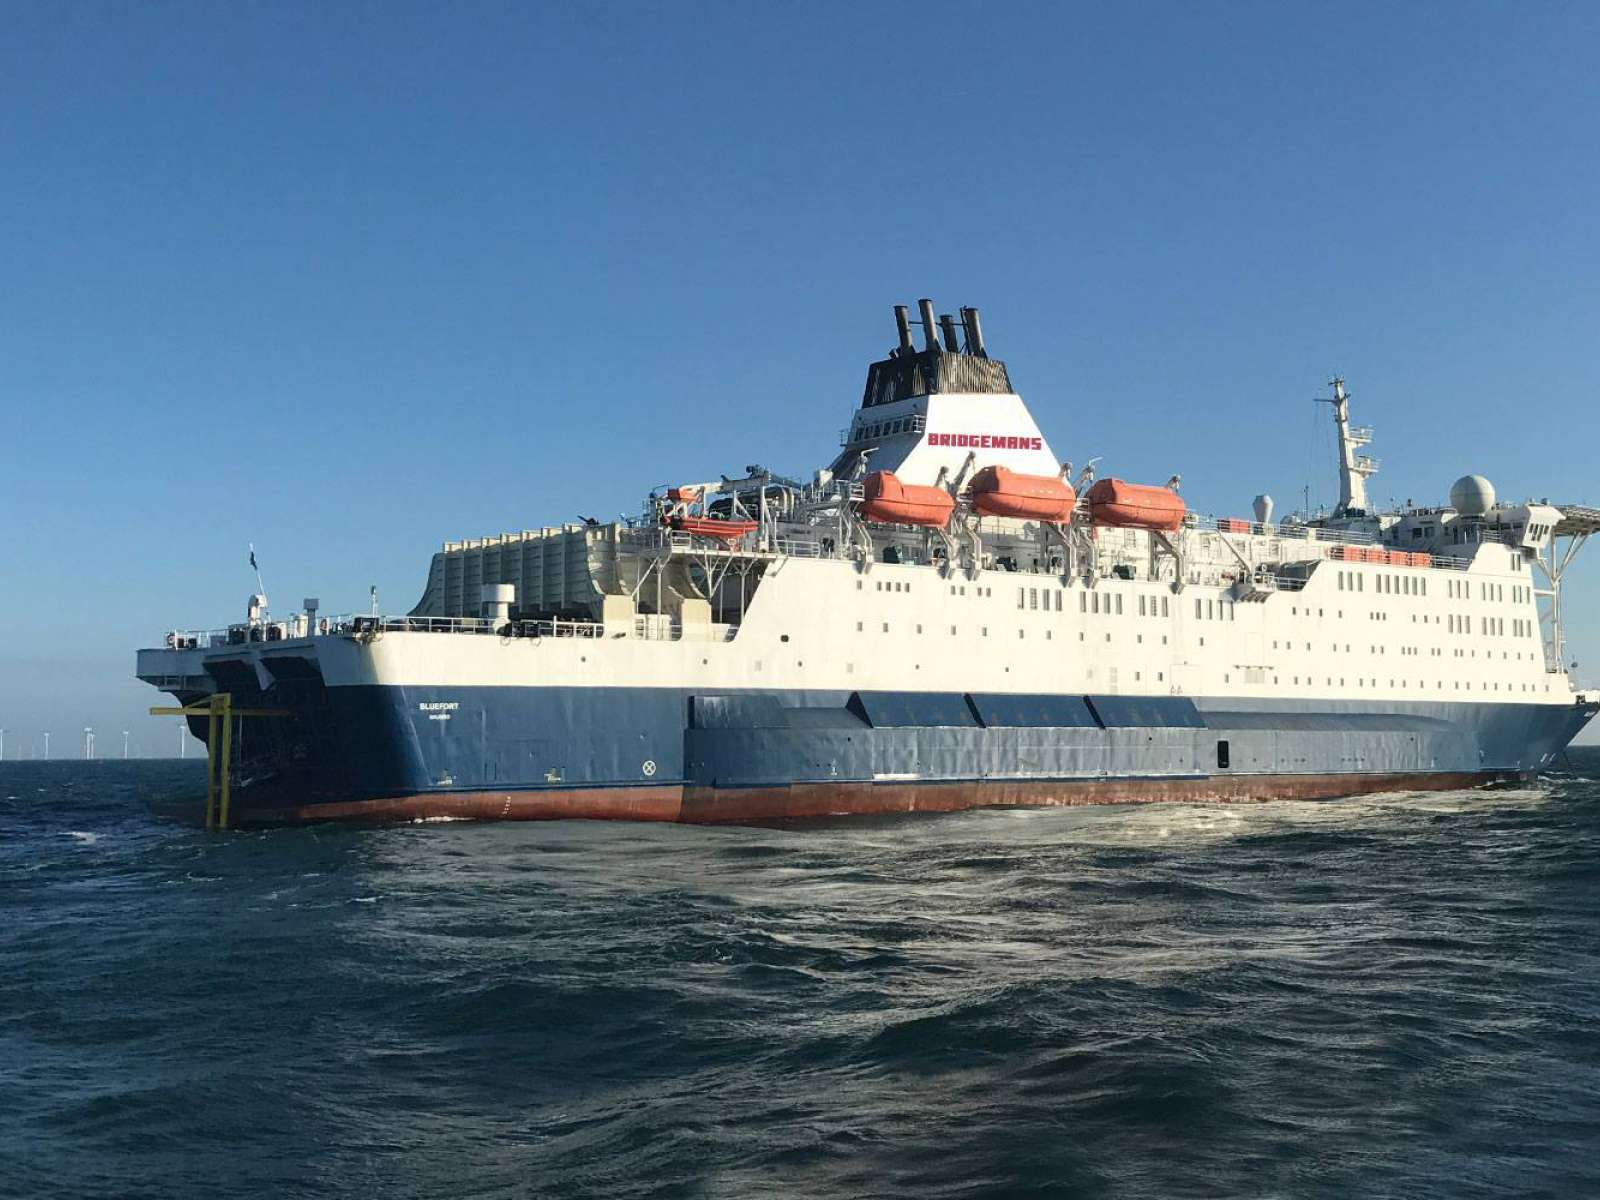 MHI Vestas charters Bridgemans accommodation vessel, nCentric is delivering full speed internet